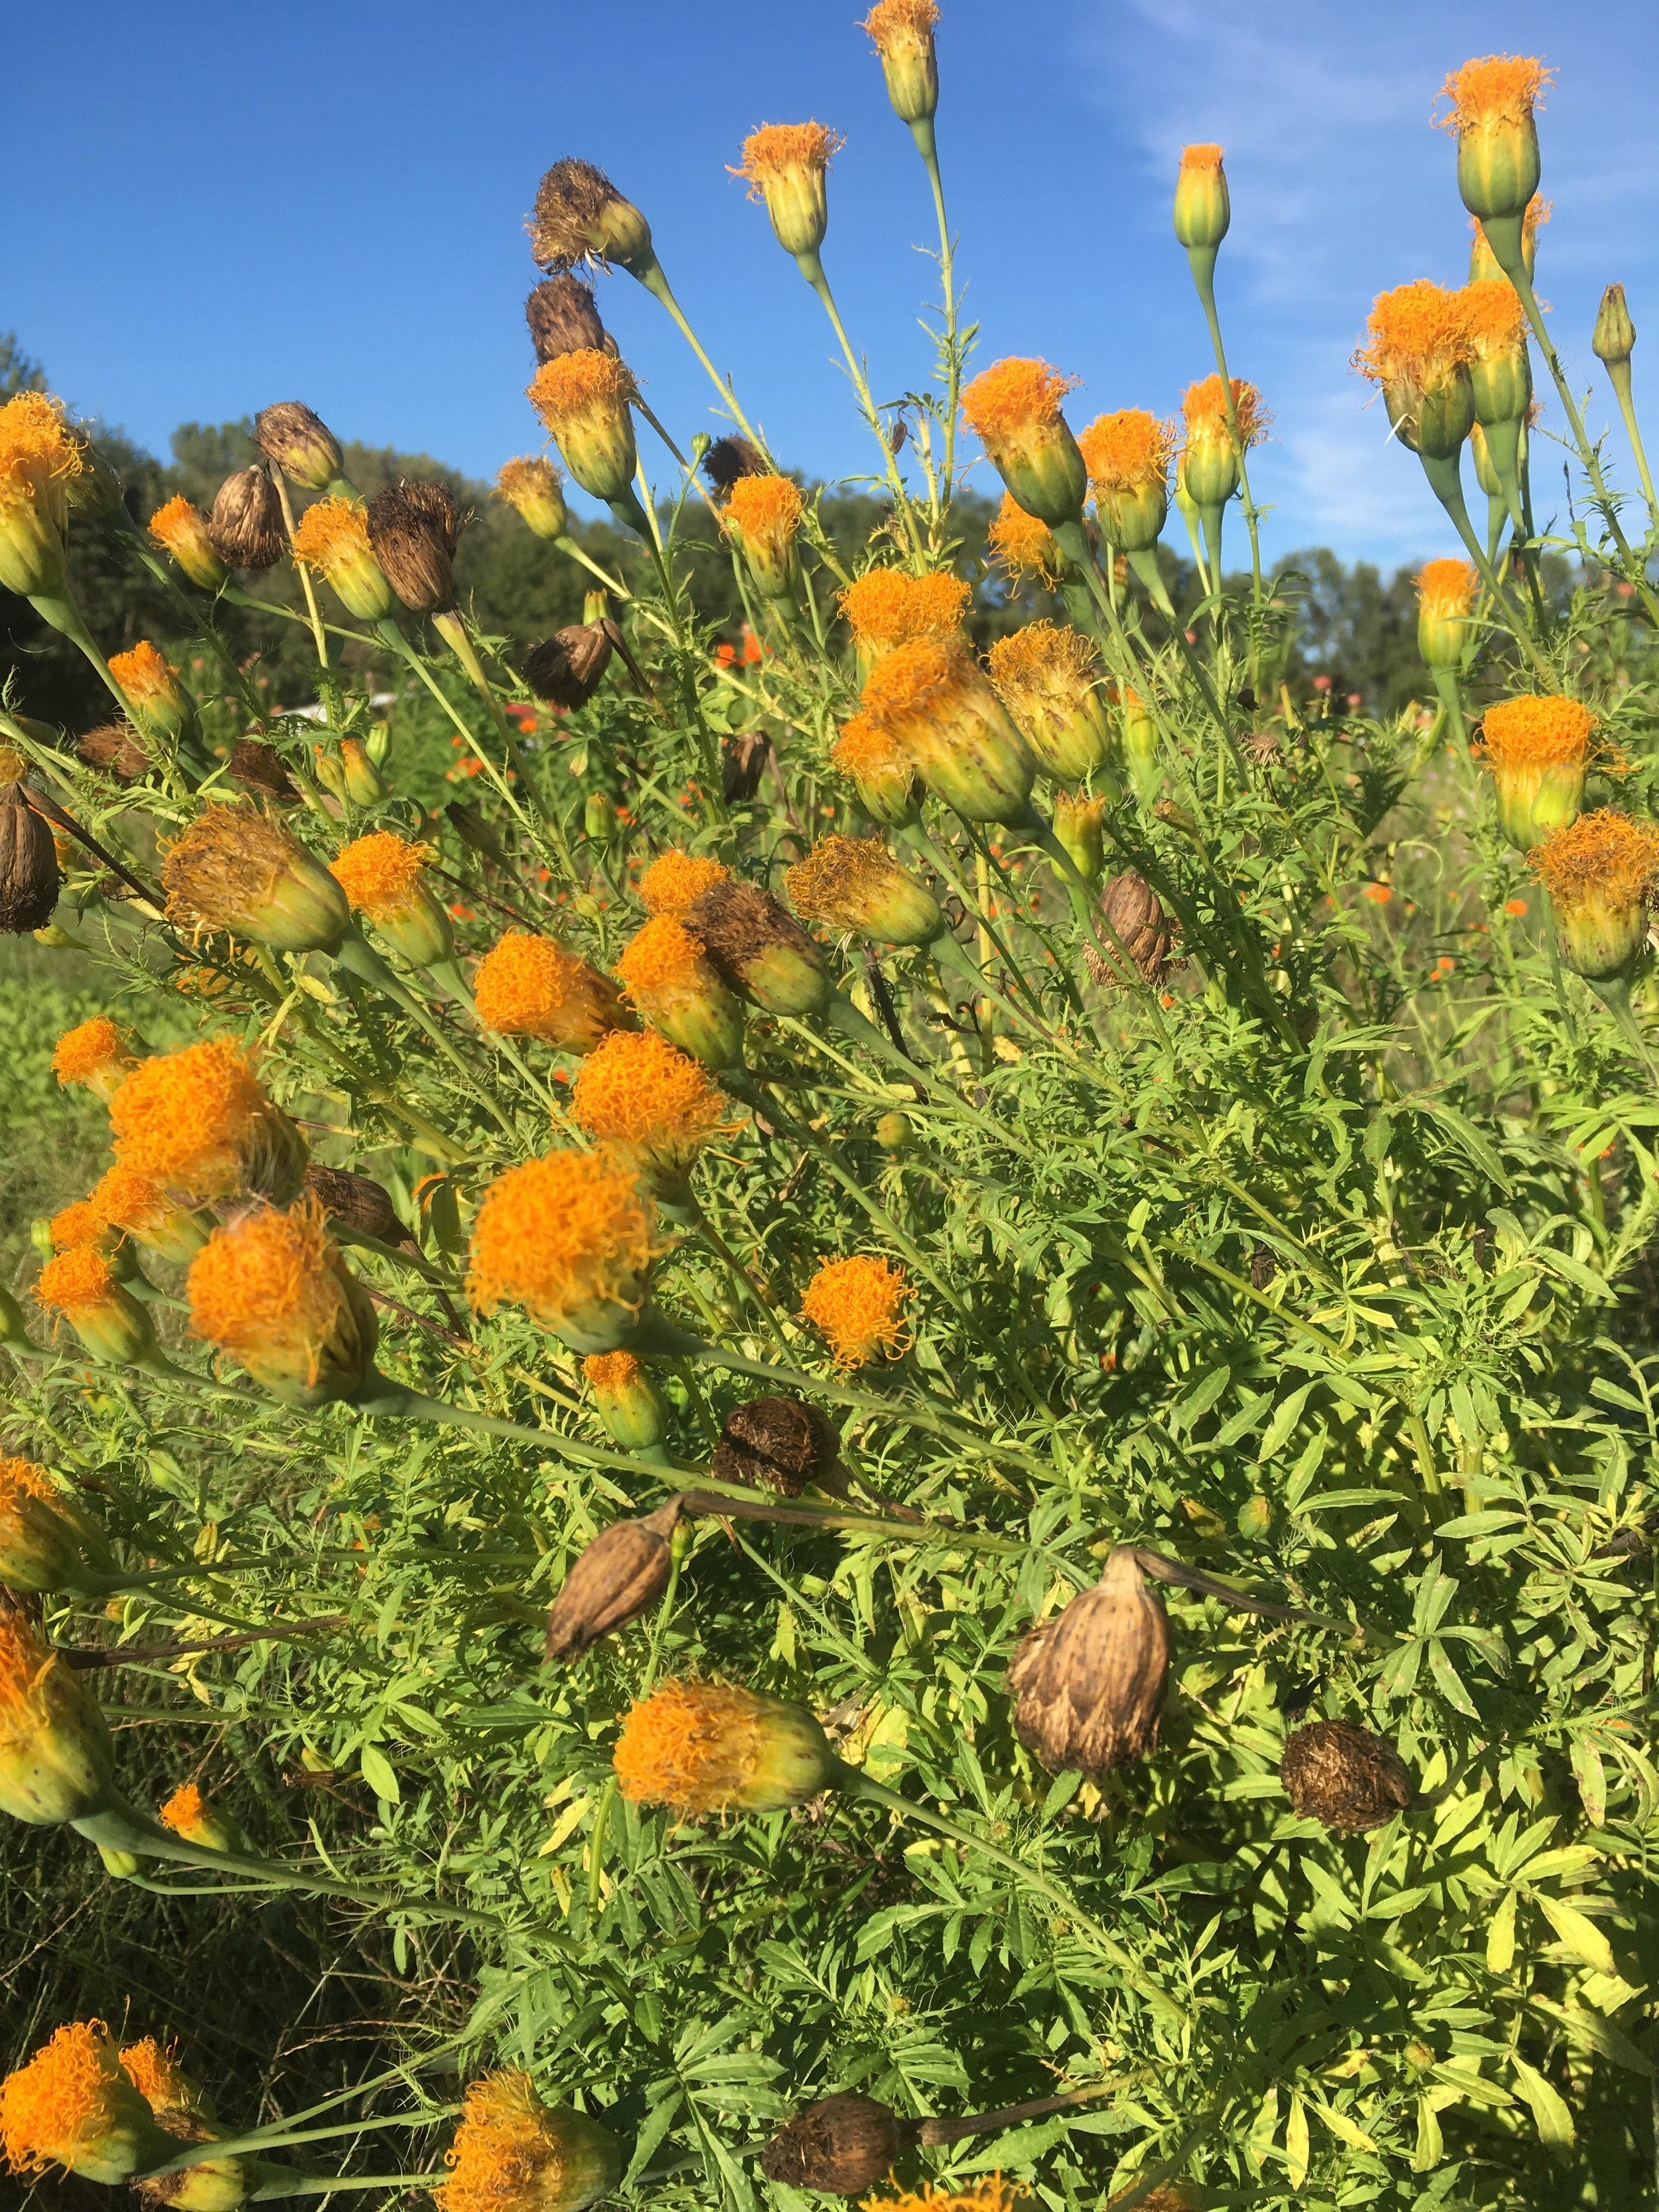 It's this just one of the most unique varieties of marigolds you have ever seen? This was planted by a previous person and came back.